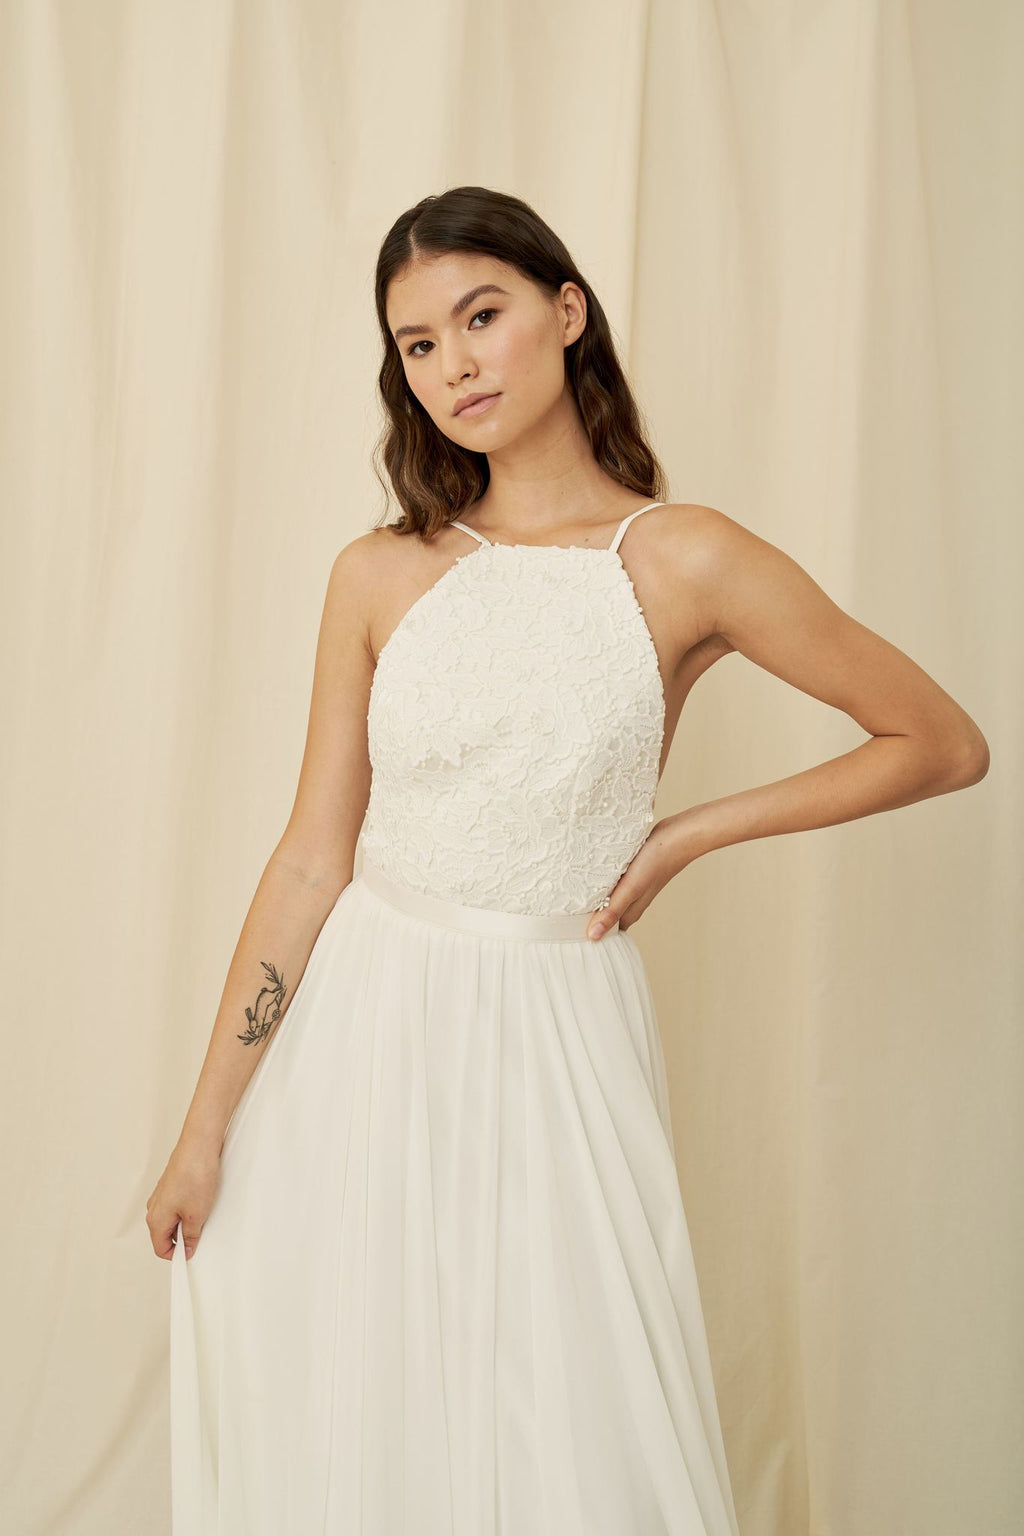 Clean cut high-neck wedding dress with floral lace, wrap ties, and a flowy chiffon skirt